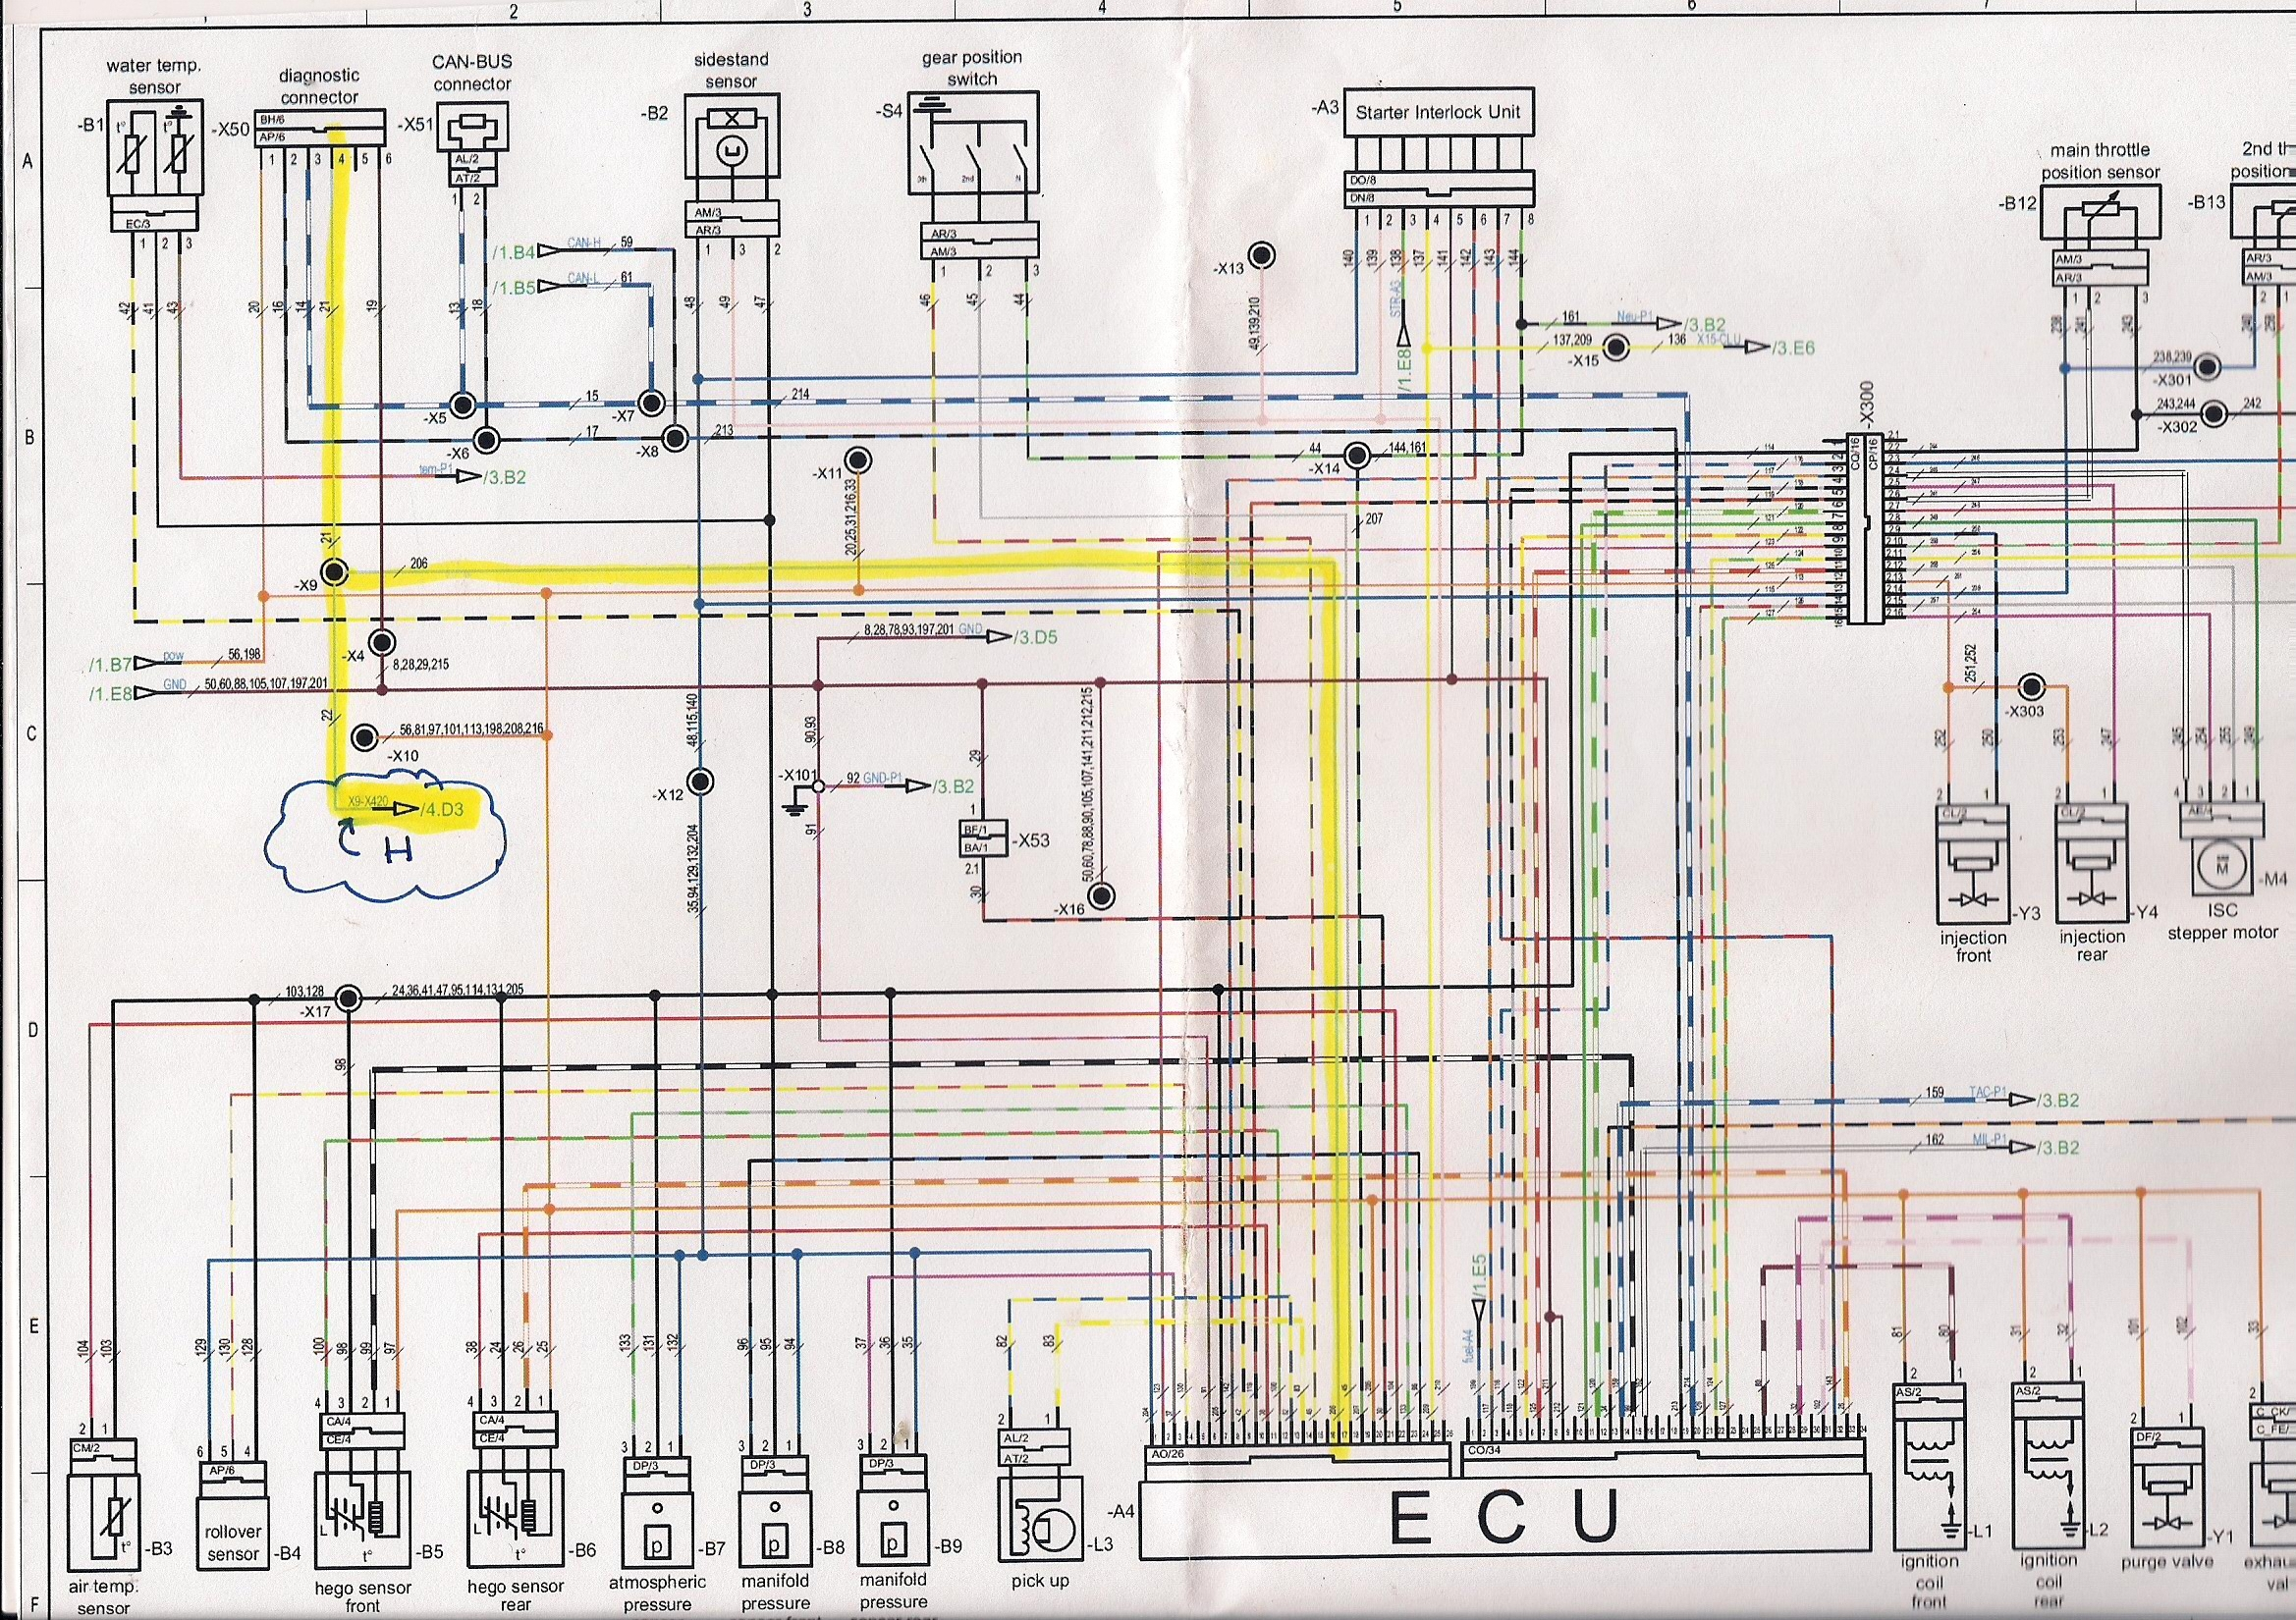 ktm 525 wiring diagram wiring diagram paperktm 525 wiring diagram schema wiring diagram ktm 525 wiring diagram